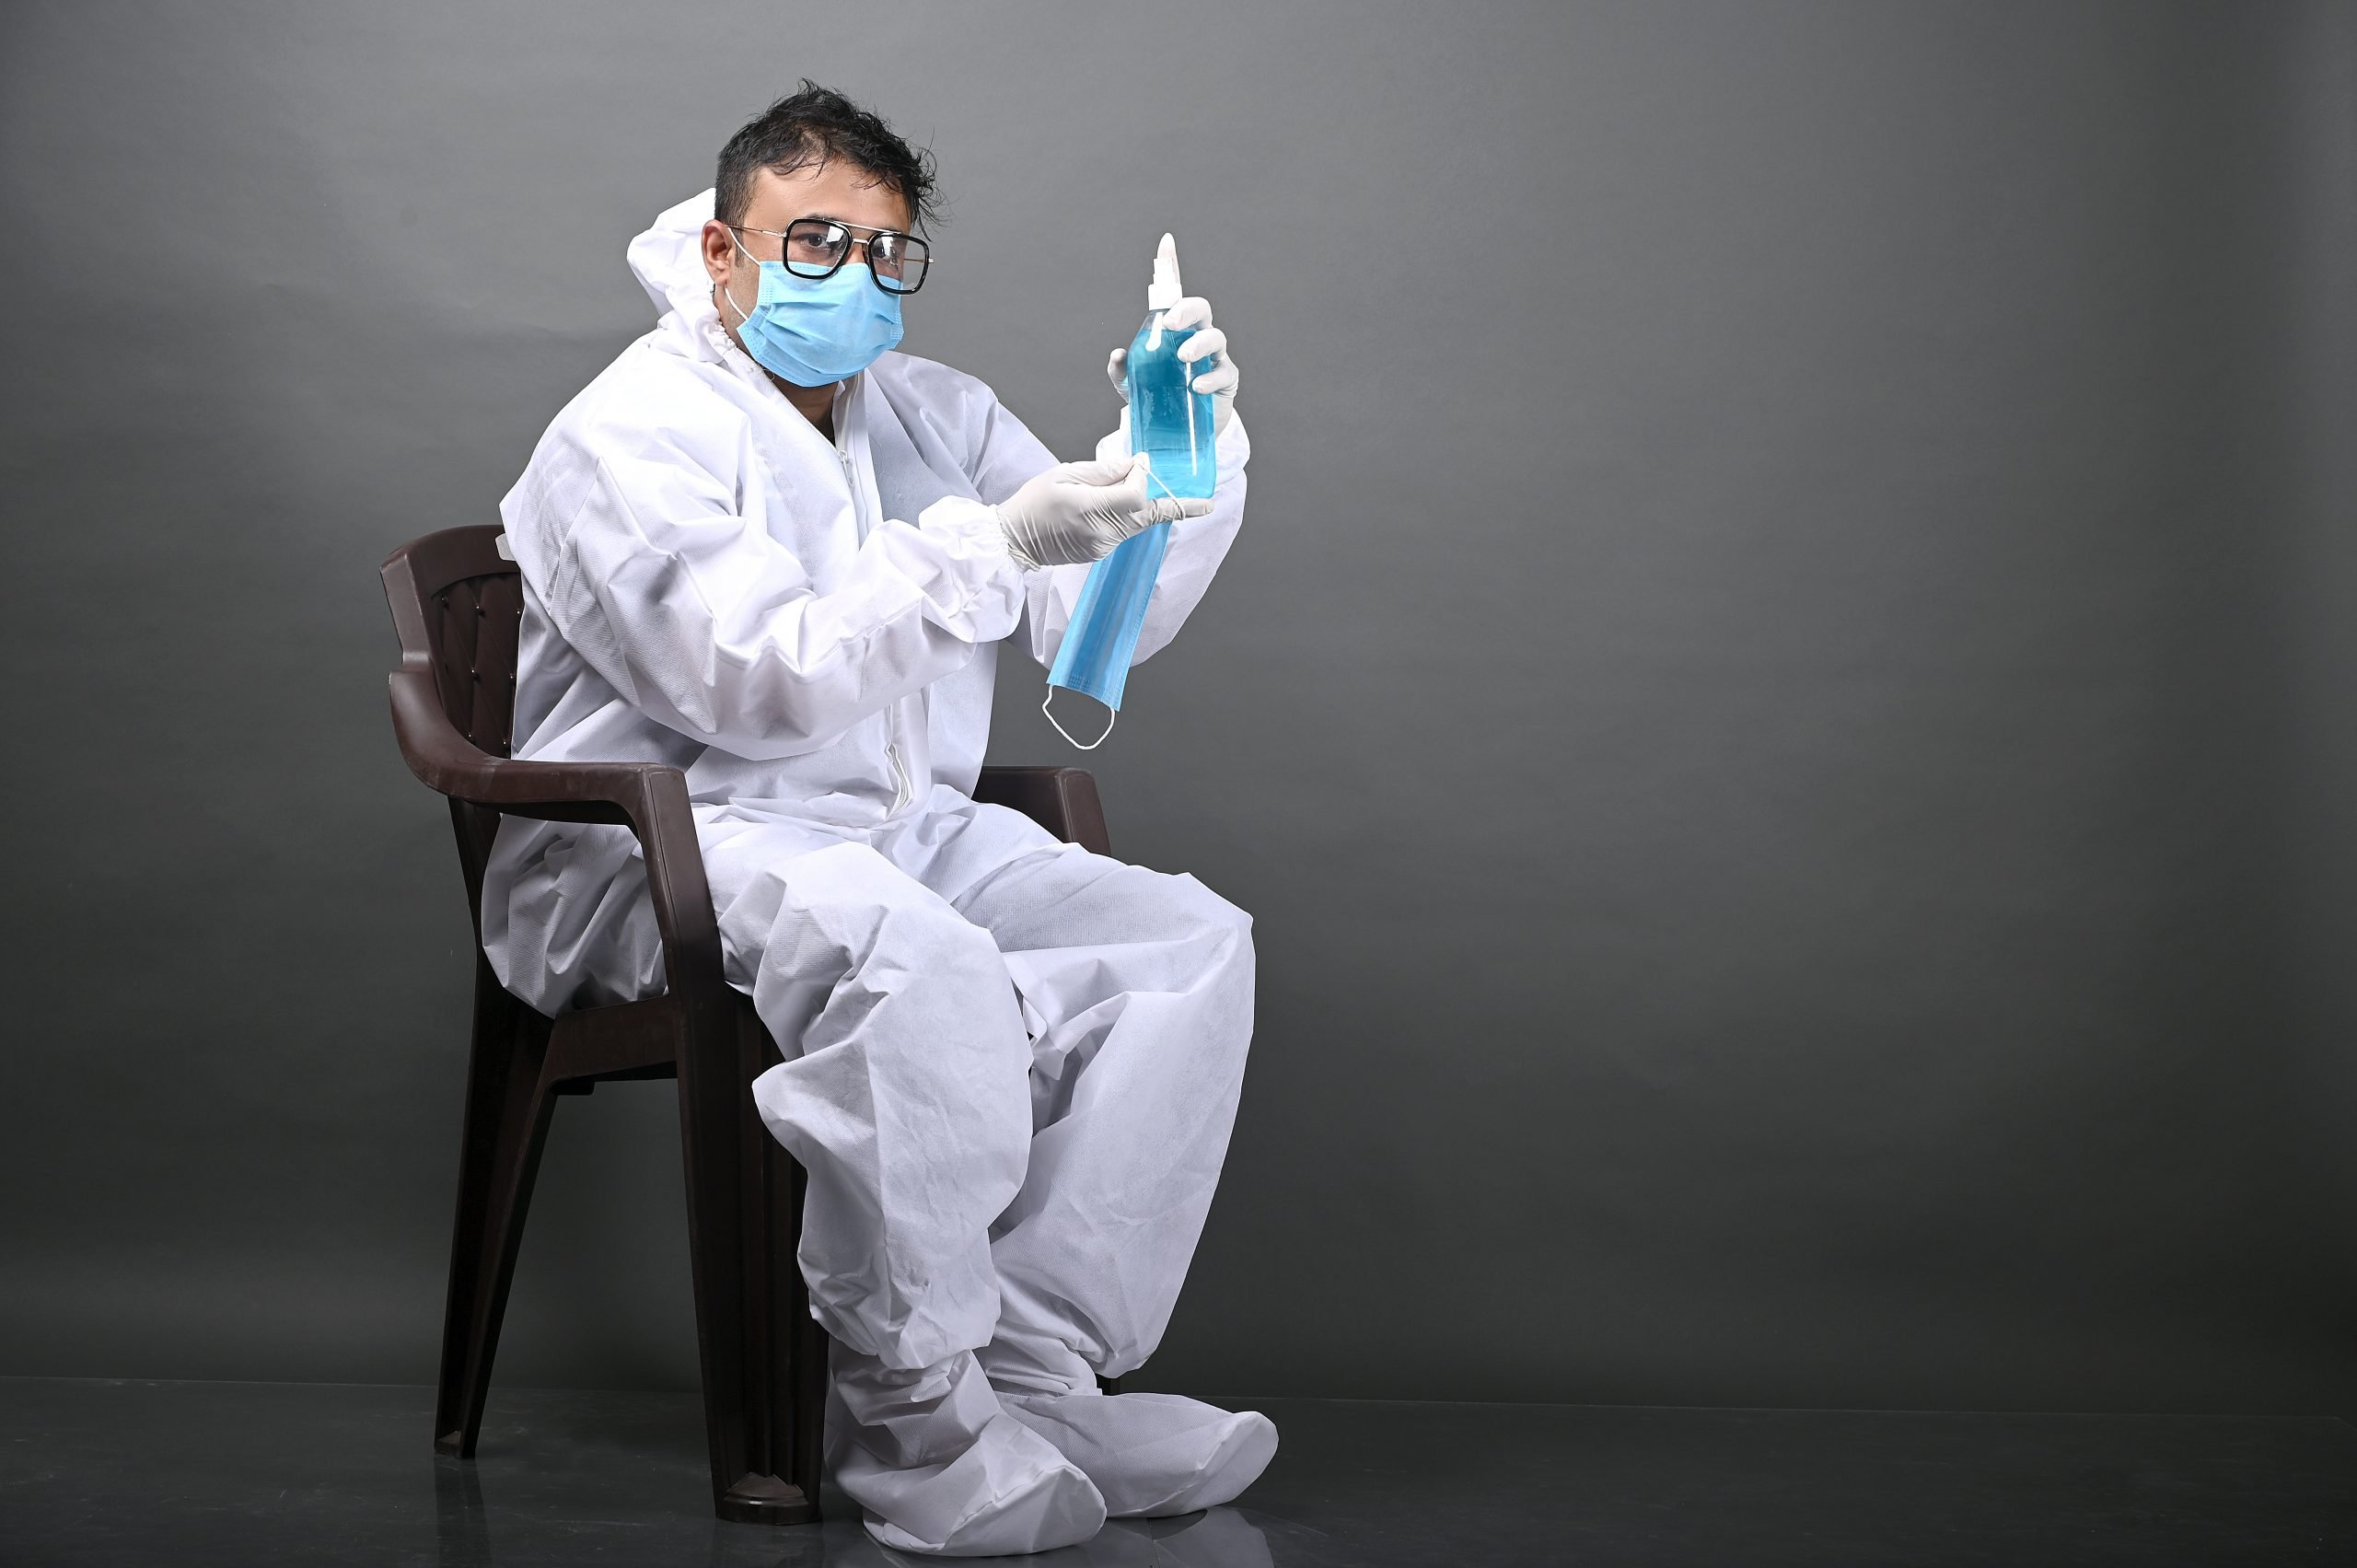 Man wearing PP kit and sanitizer in his hand